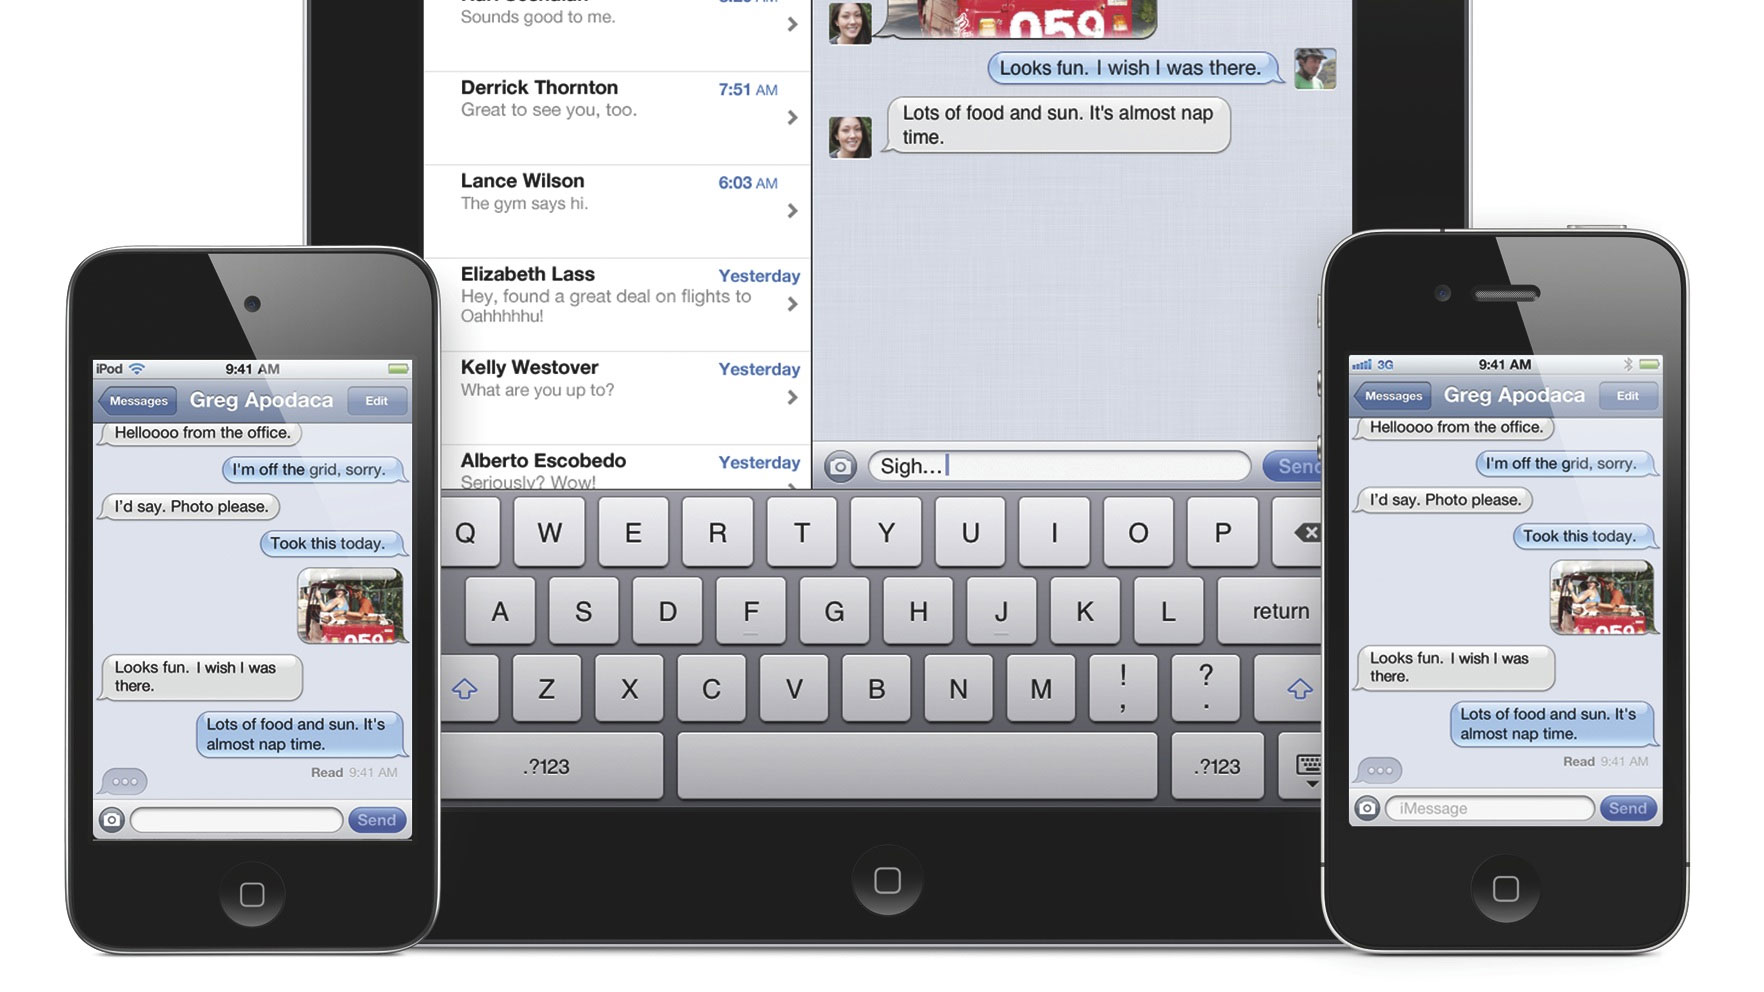 The beginner's guide to iMessage in iOS 5 | TechRadar